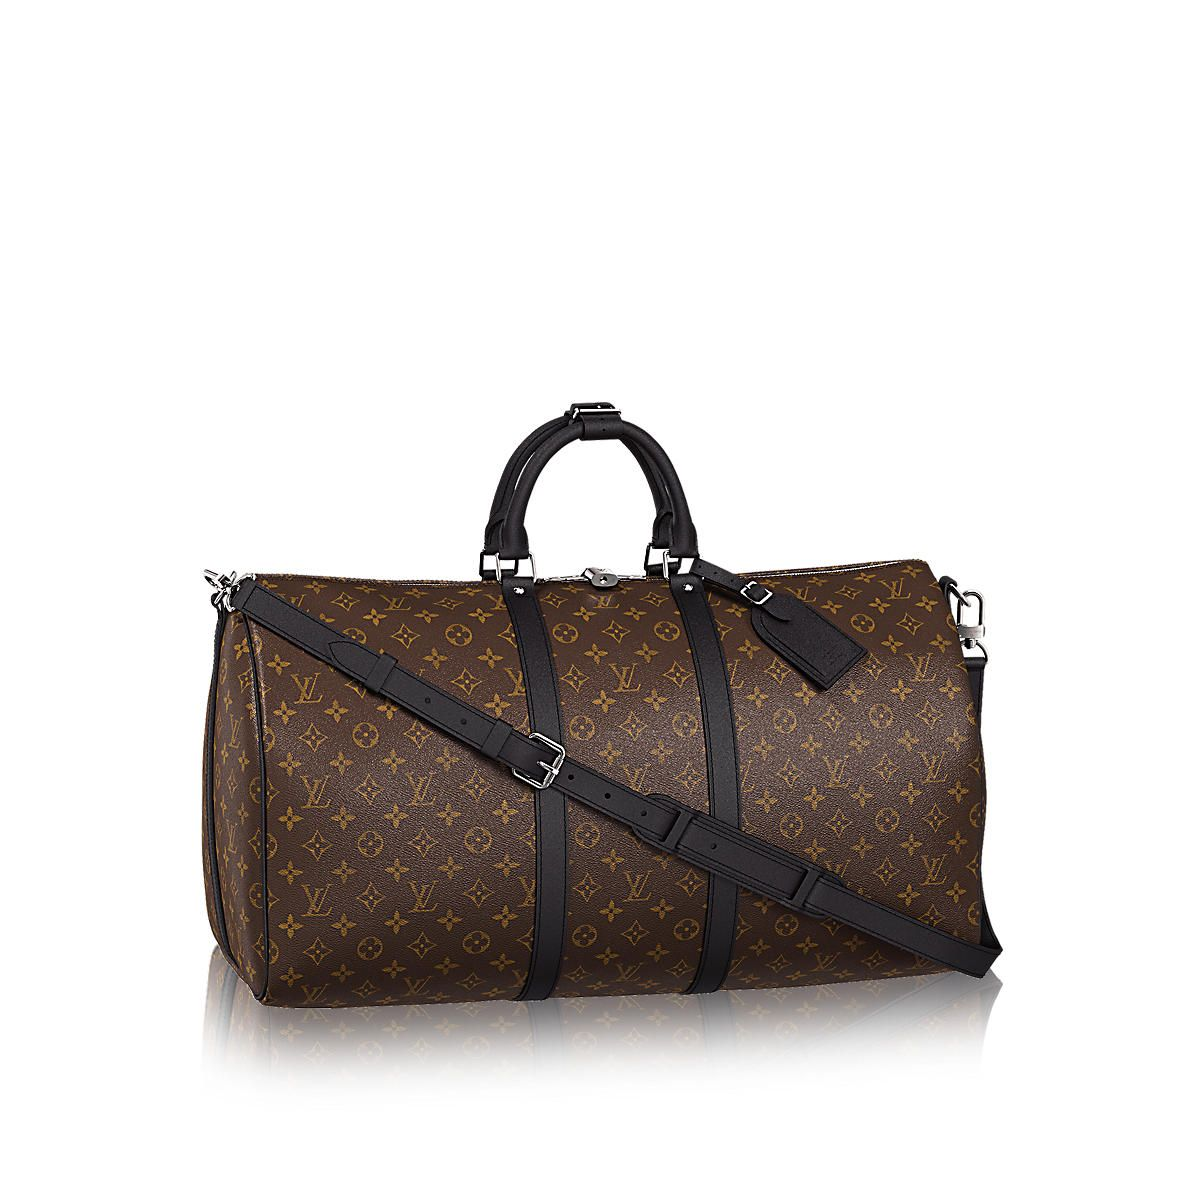 085d12ef3 Keepall Bandoulière 55 Monogram Macassar Canvas in MEN's TRAVEL & LUGGAGE  collections by Louis Vuitton